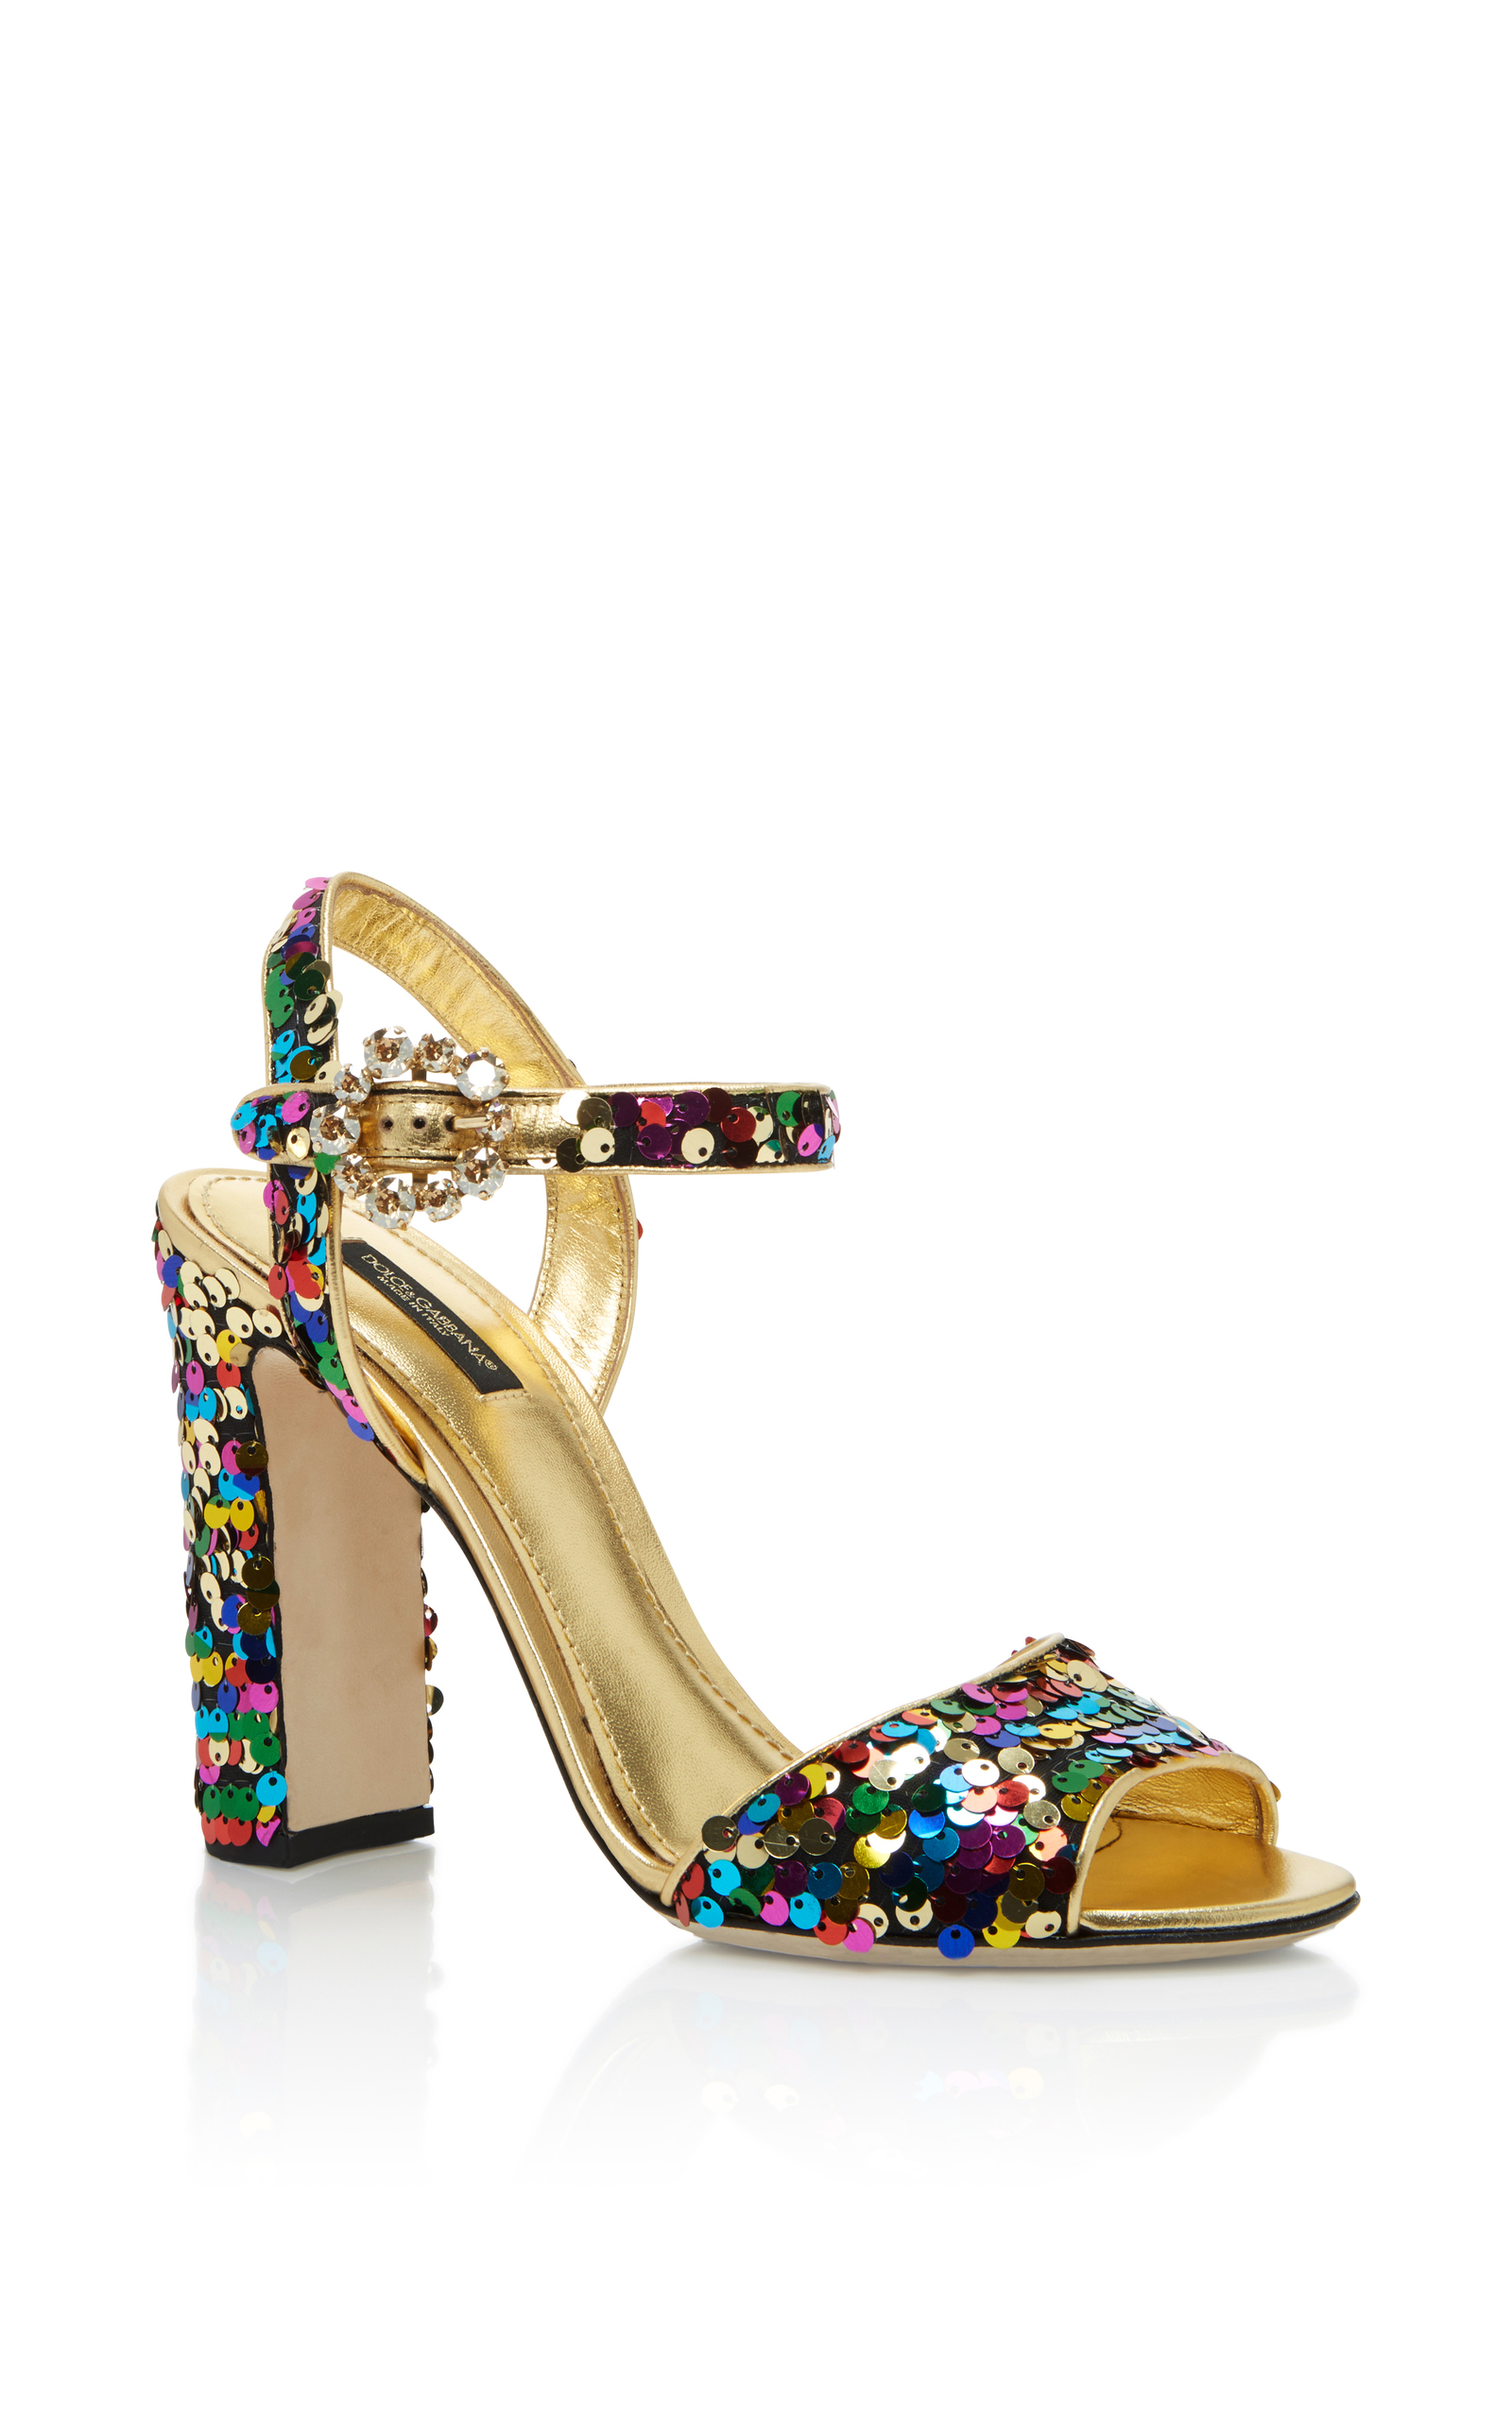 b74b7fdd9e1 Sequin Pumps by Dolce   Gabbana